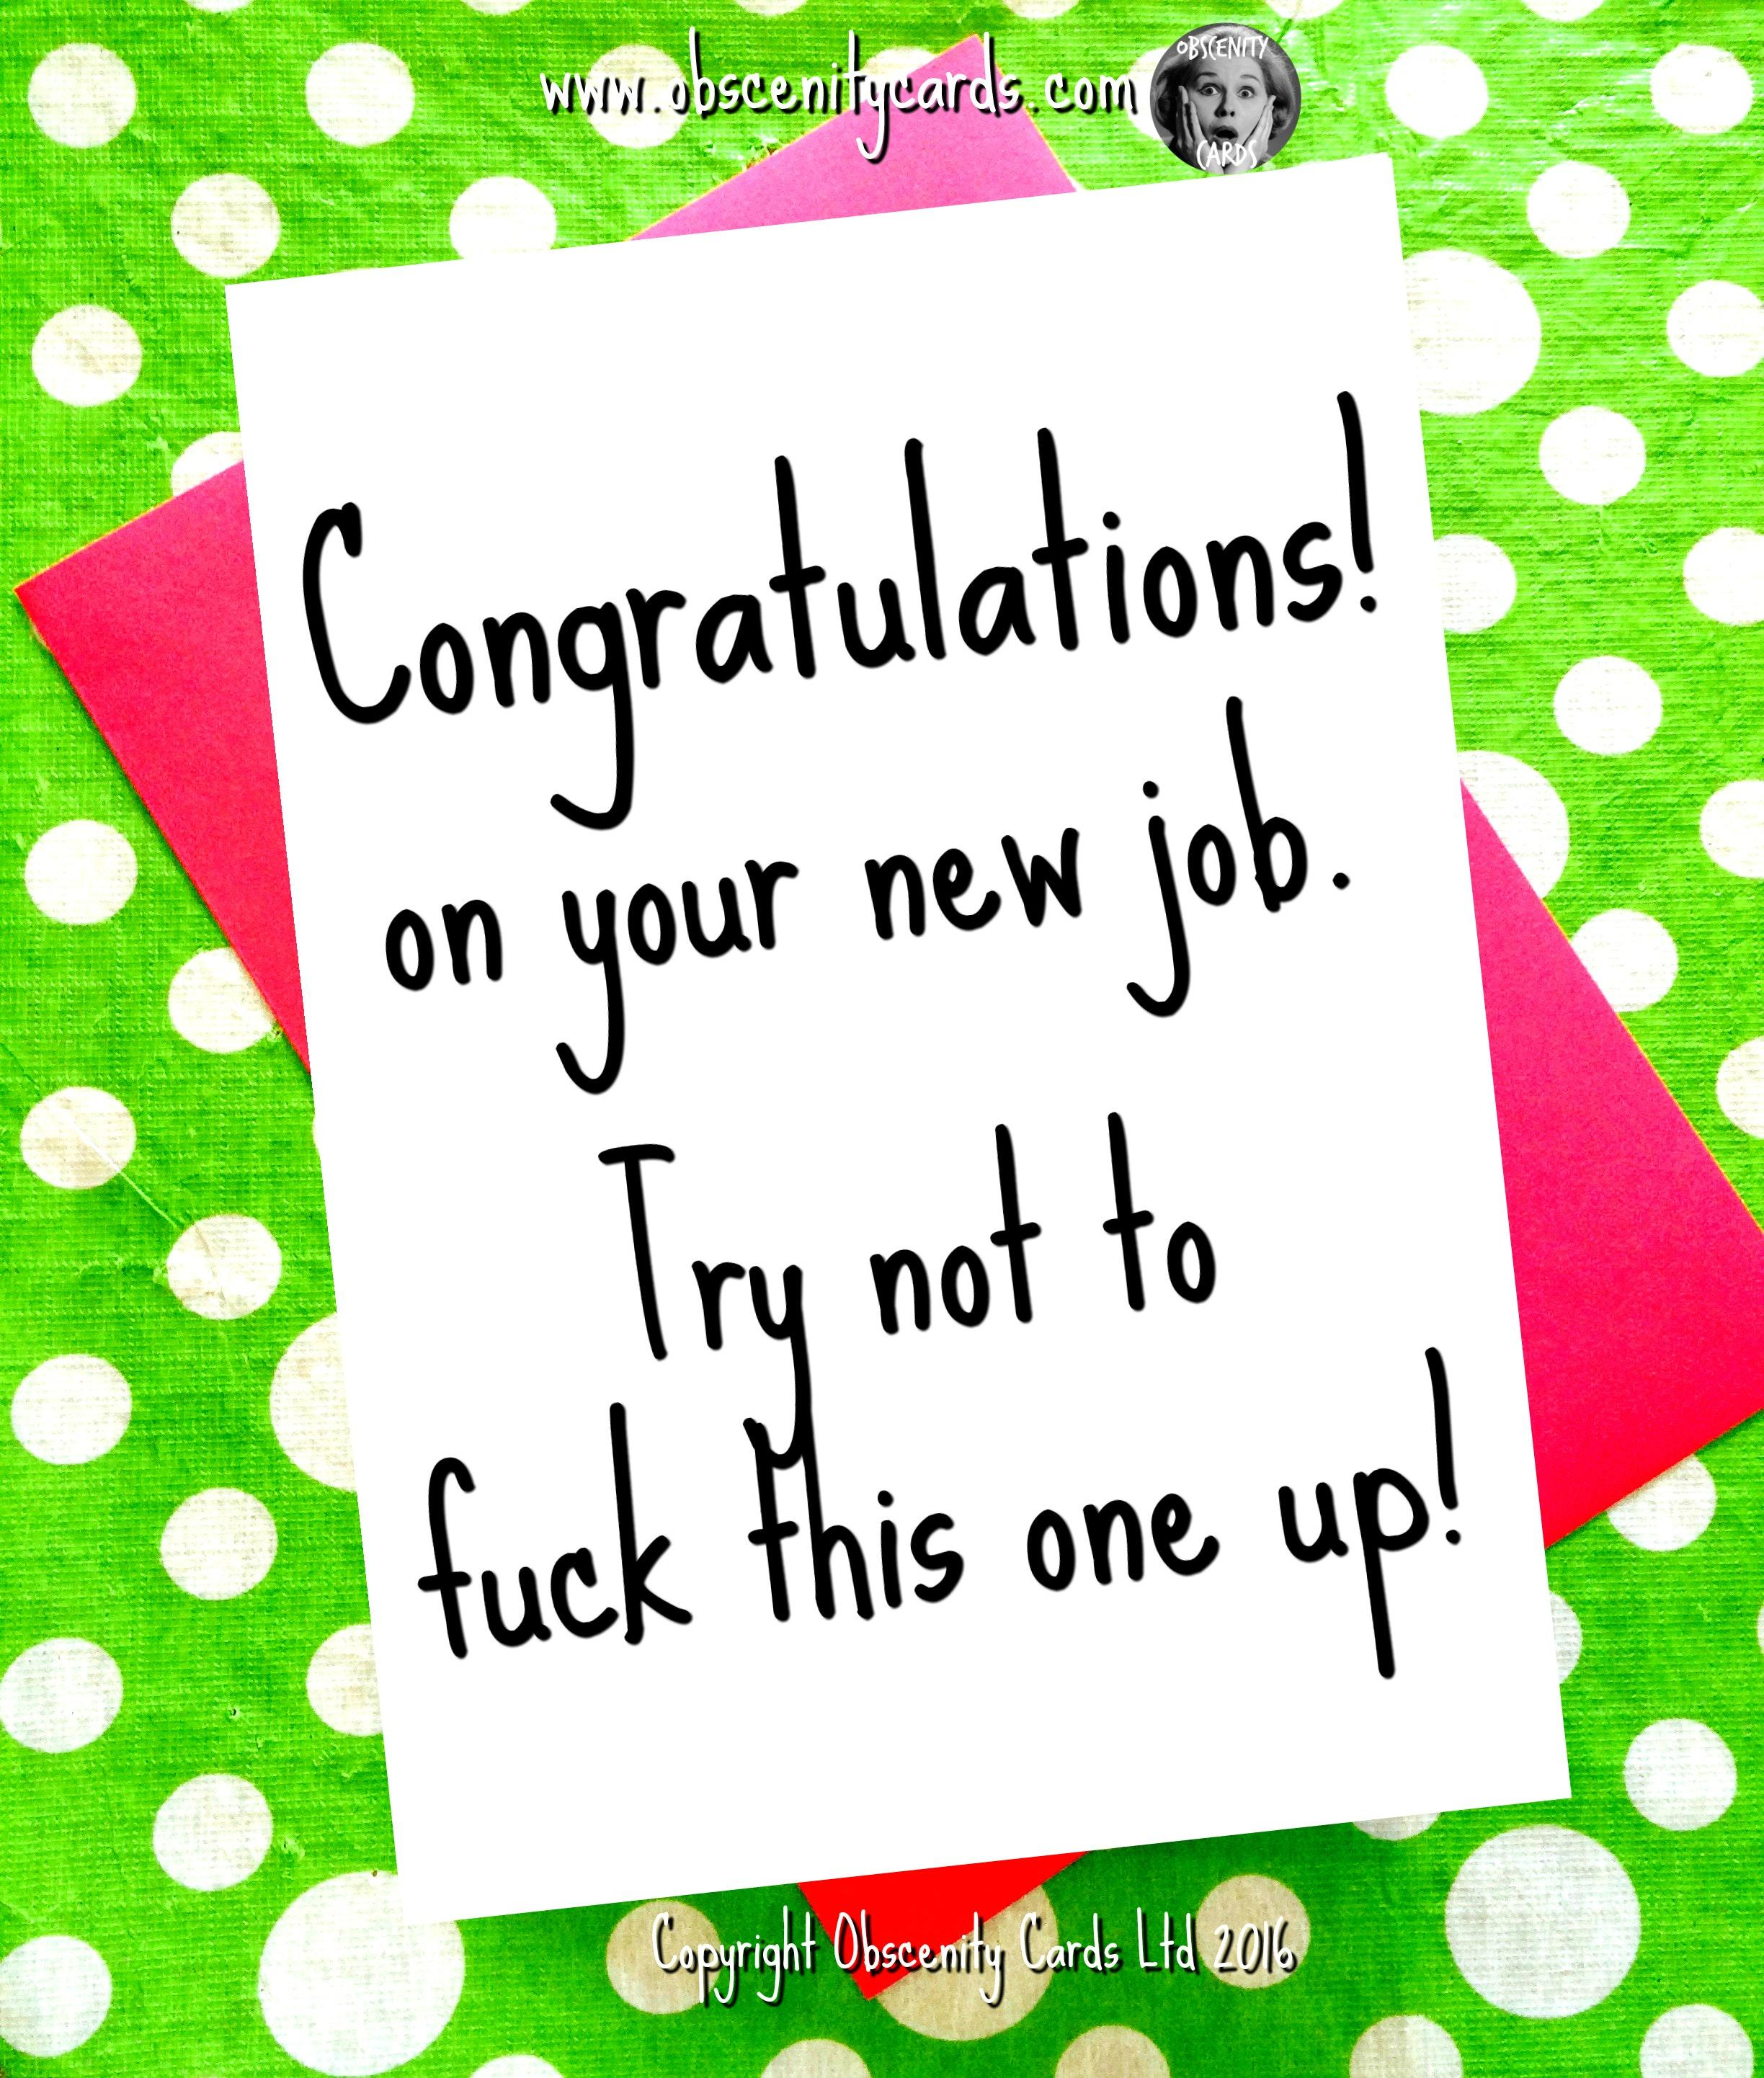 CONGRATULATIONS on your new job card  - try not to fuck this one up